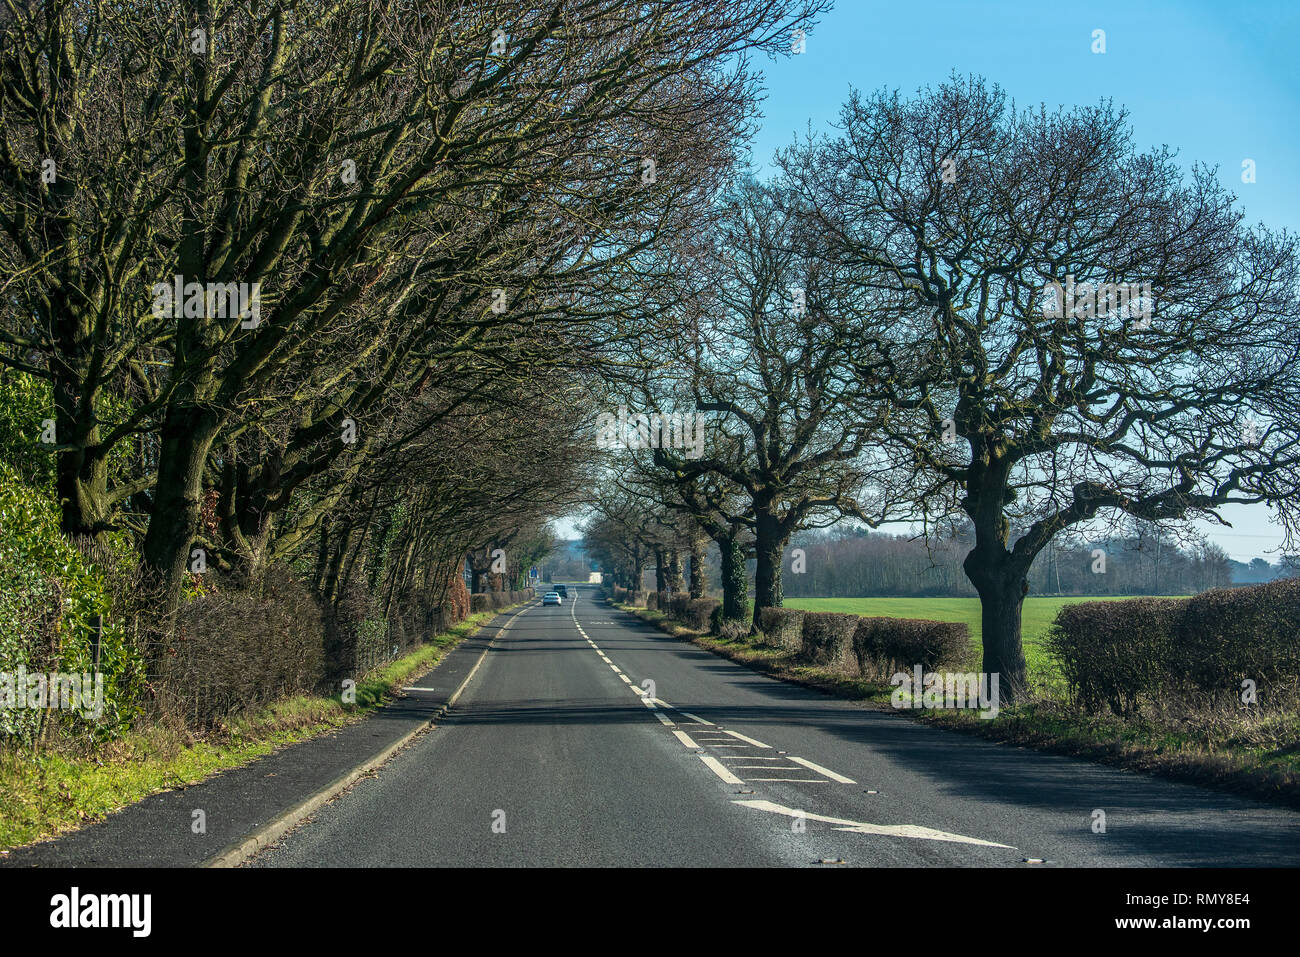 Country section of the A50 trunk road at Warrington. Treelined - Stock Image